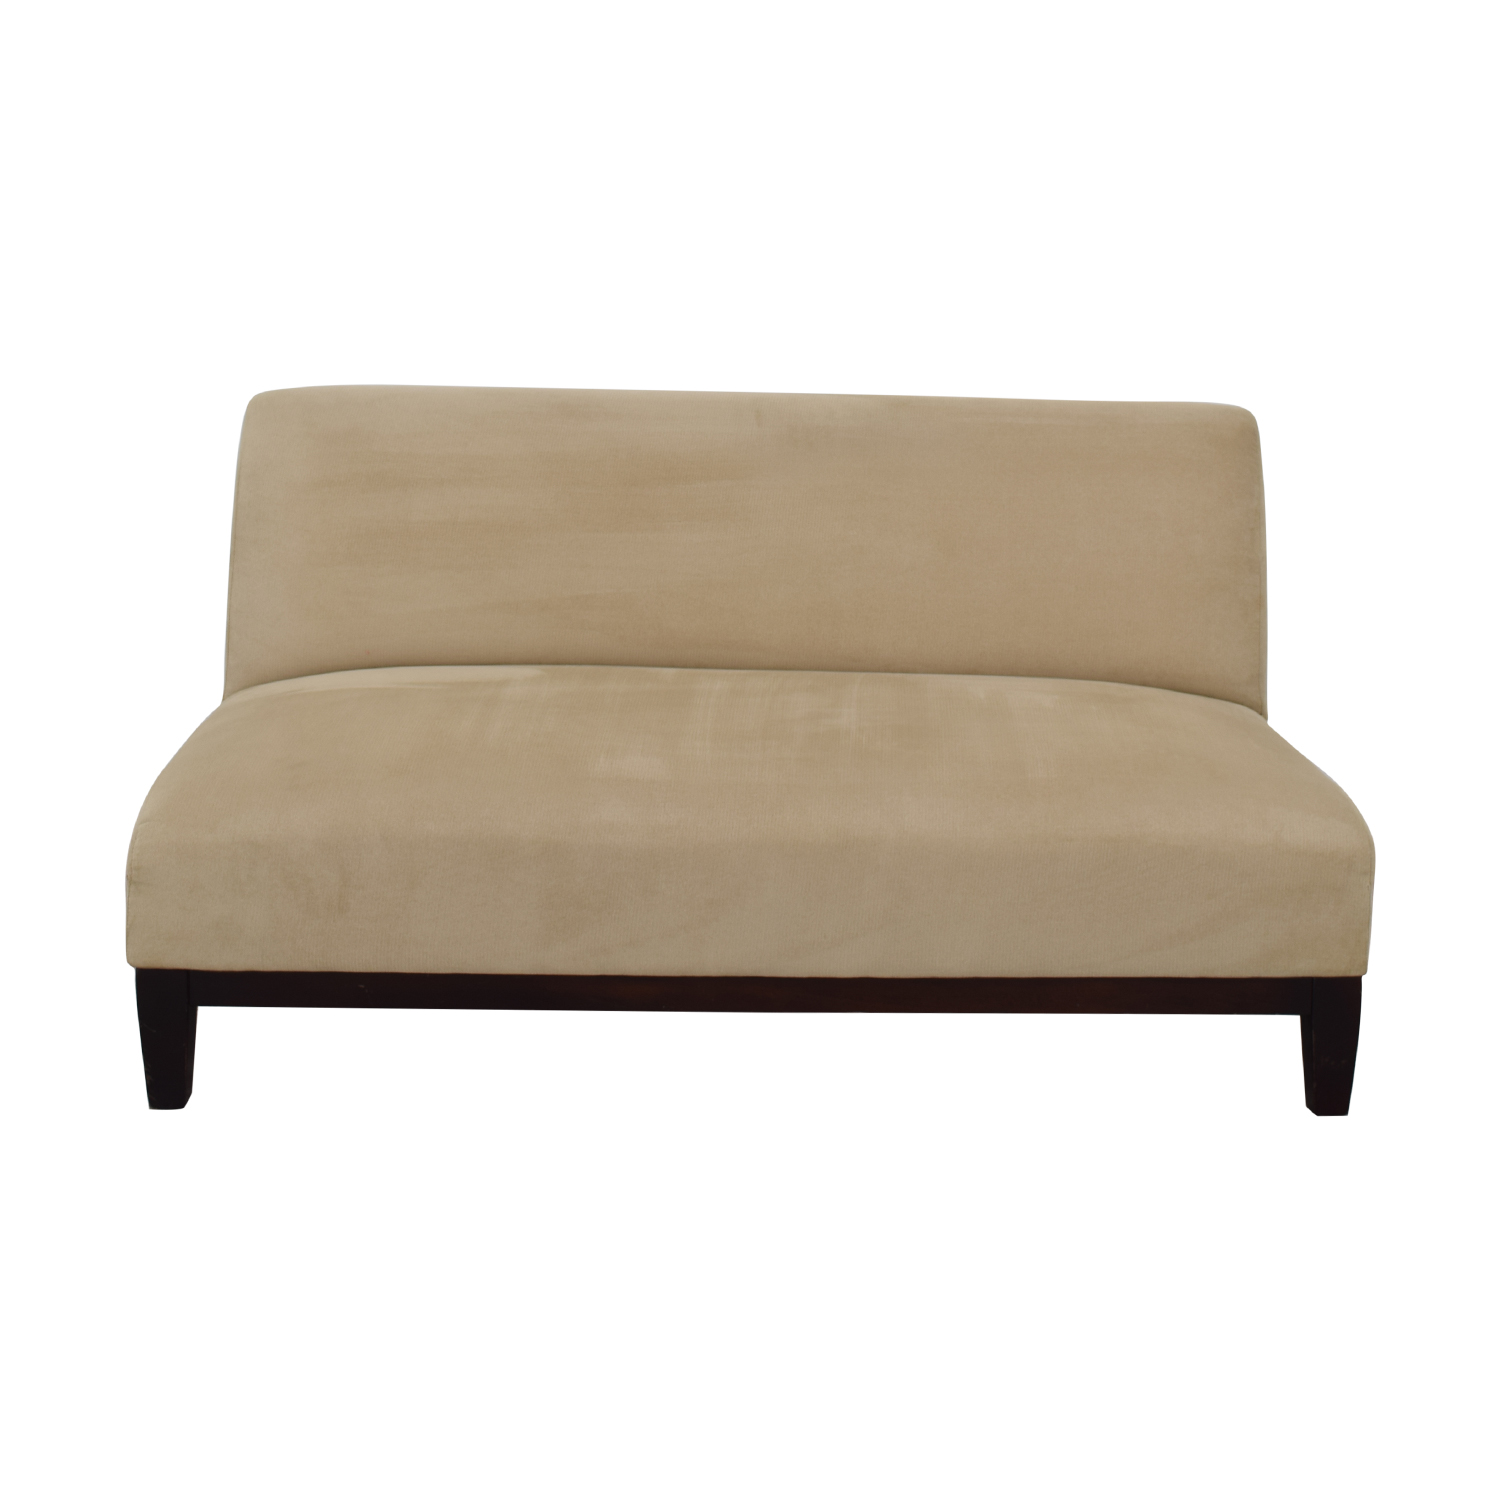 buy Room & Board Beige Microfiber Armless Loveseat Room & Board